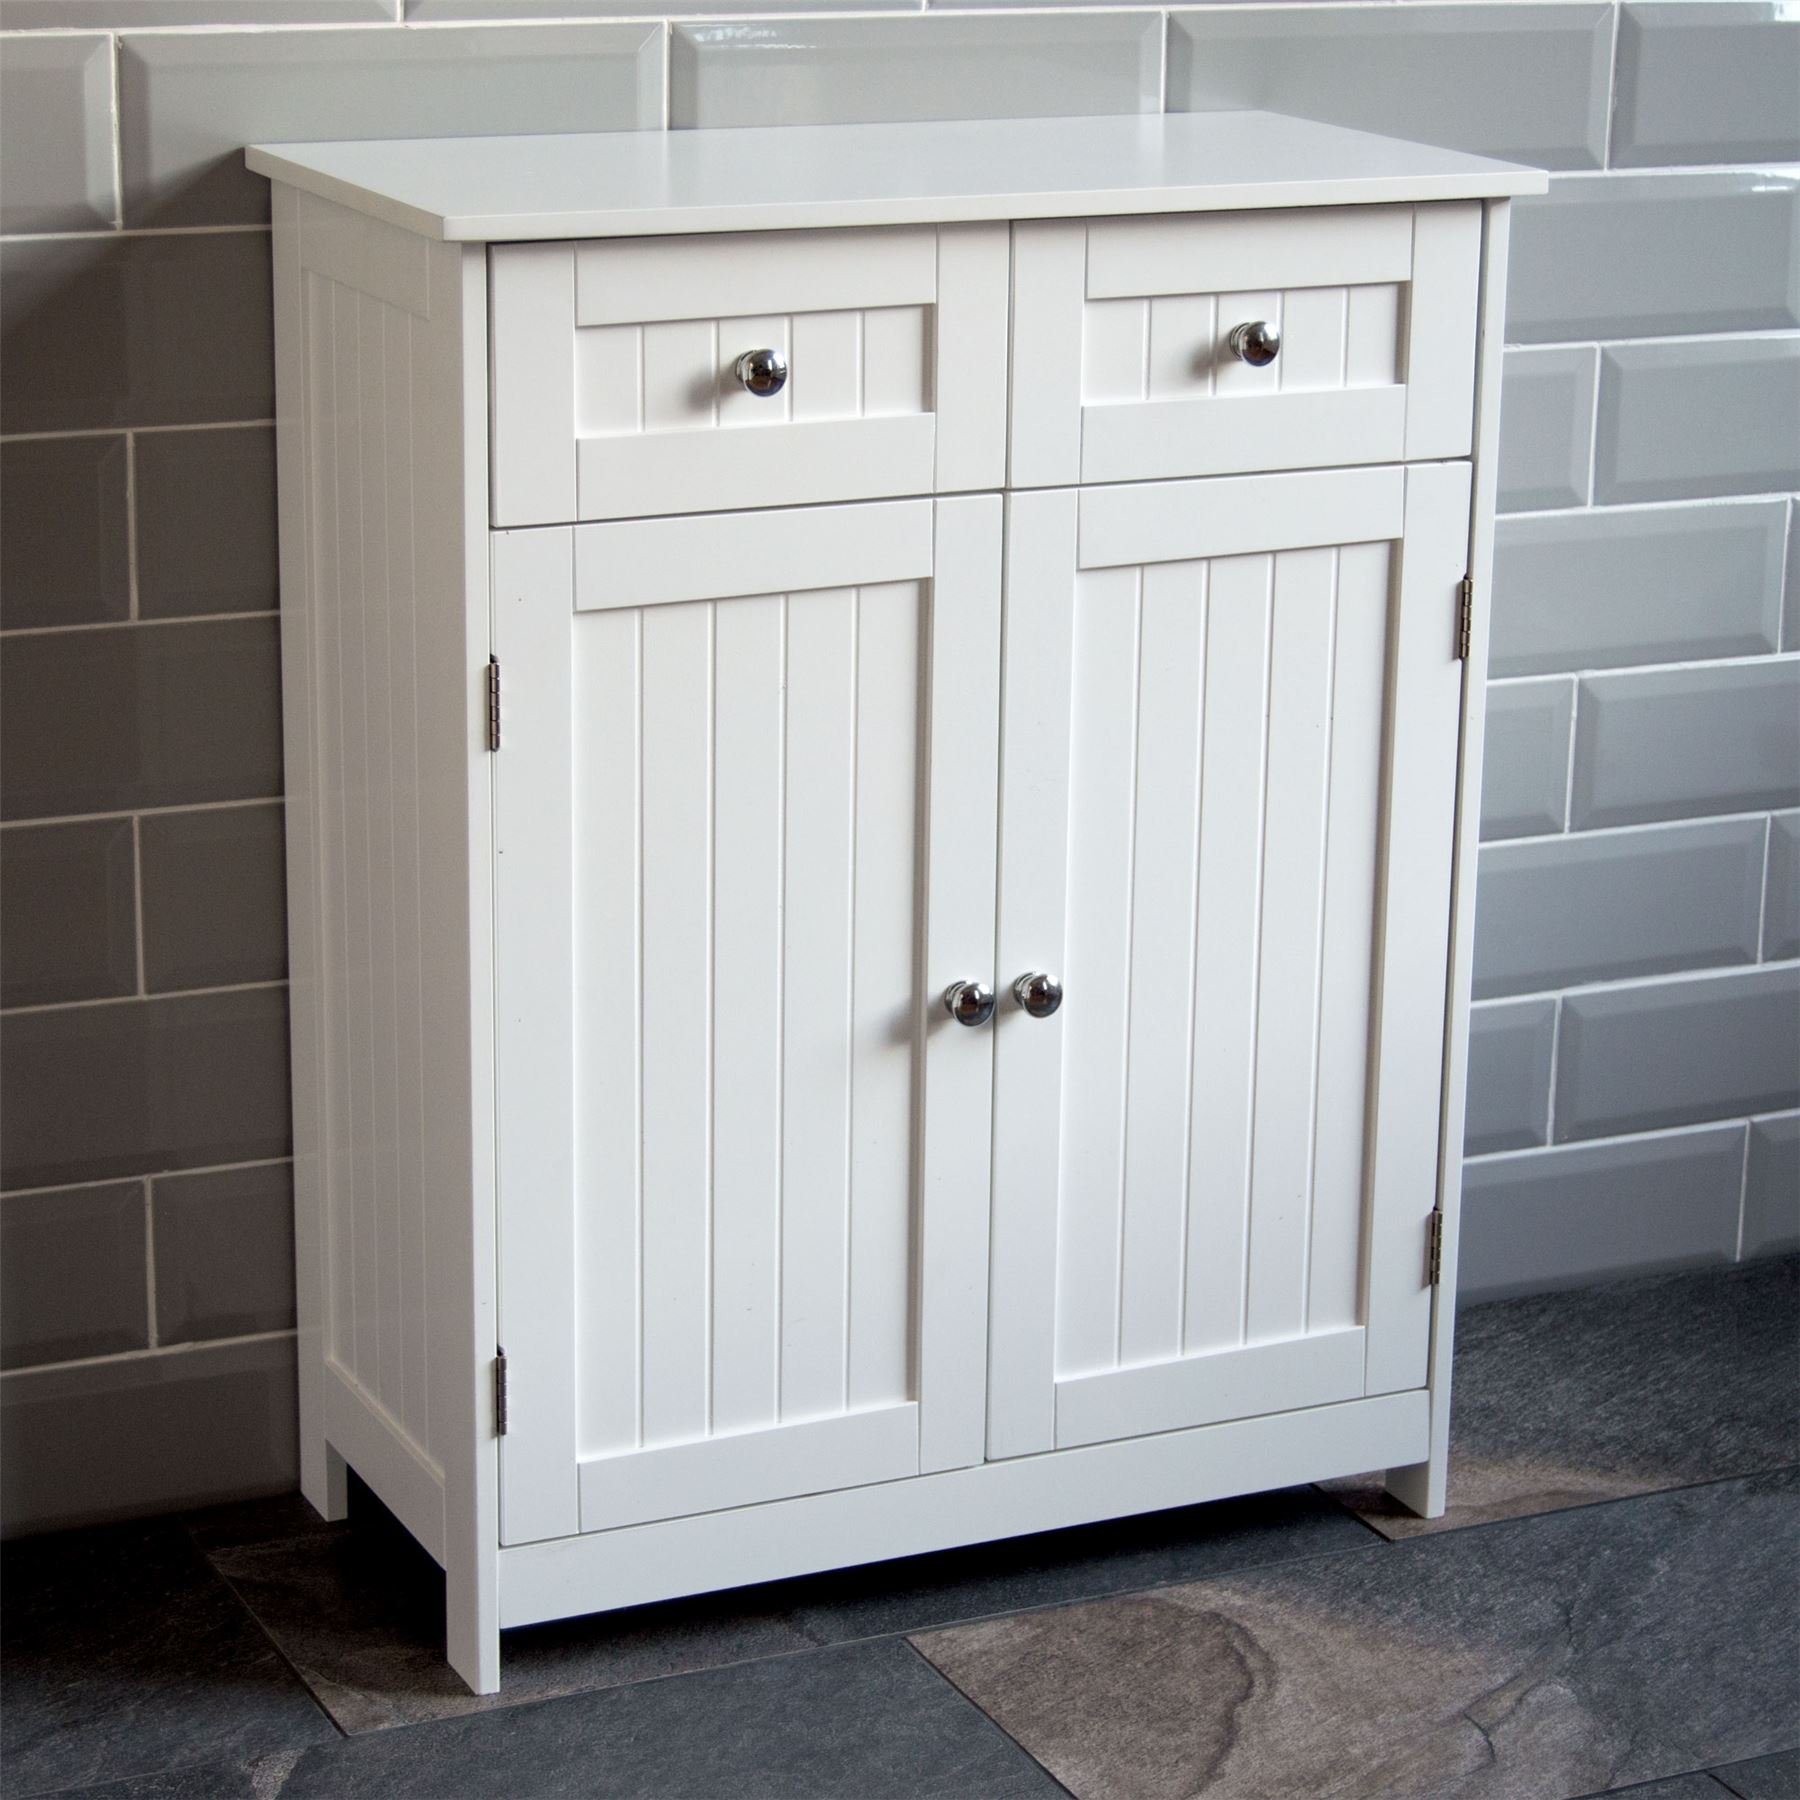 Priano bathroom cabinet 2 drawer 2 door storage cupboard Bathroom storage cabinet with drawers